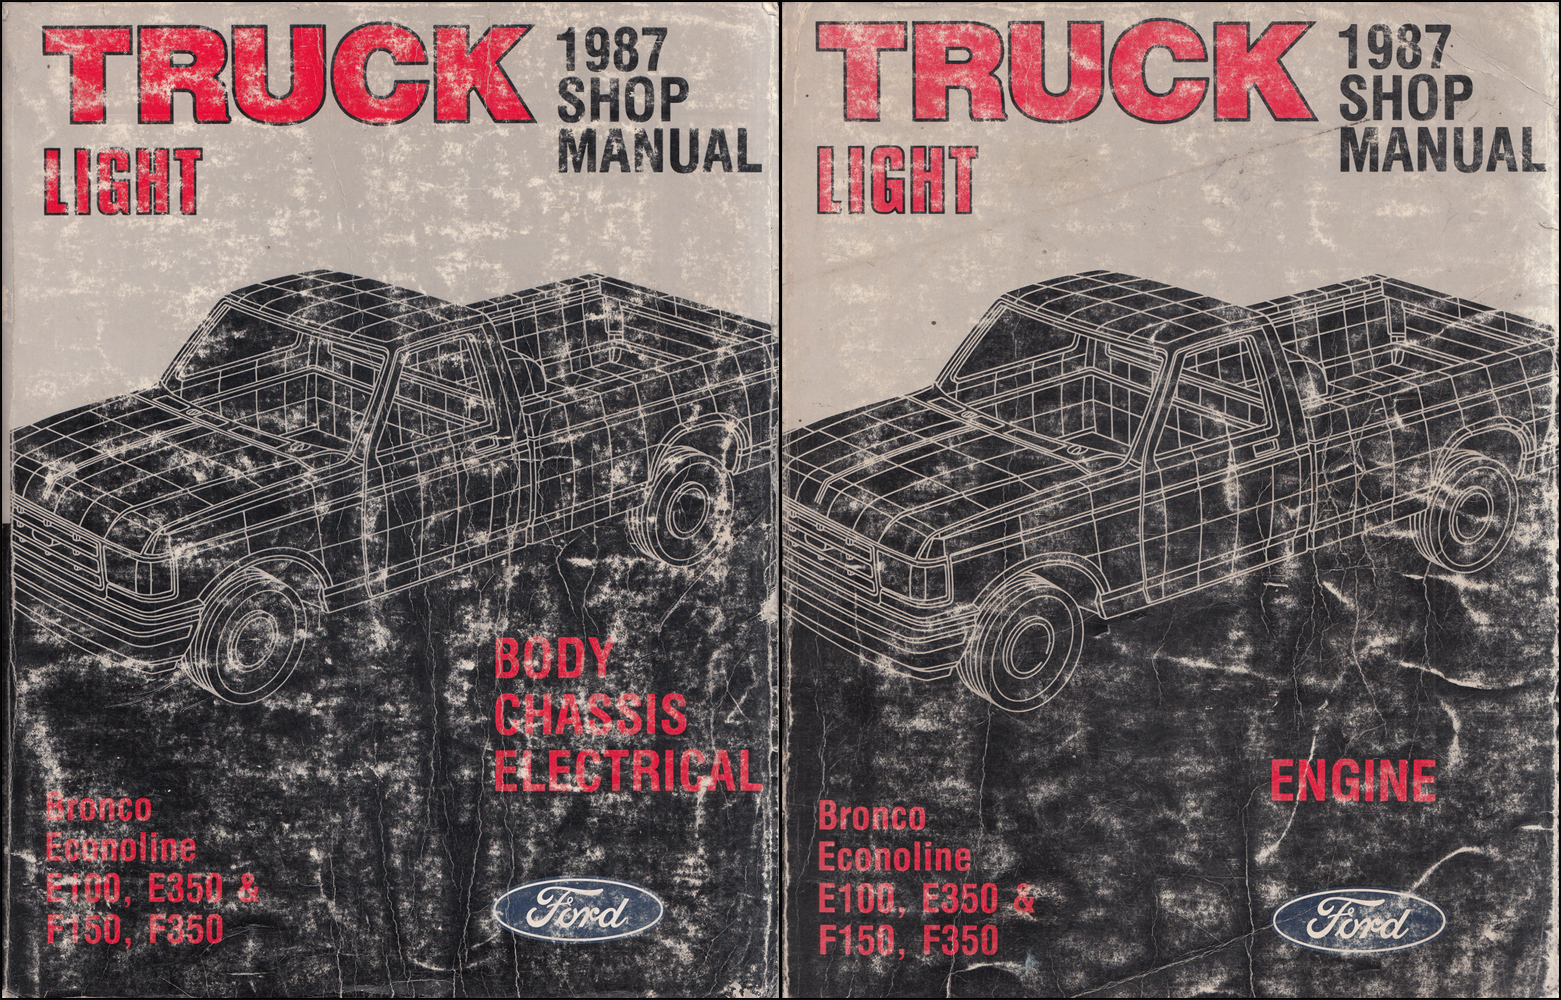 1987 Ford Pickup Truck Repair Shop Manual Econoline Van F150 F250 F350 Bronco